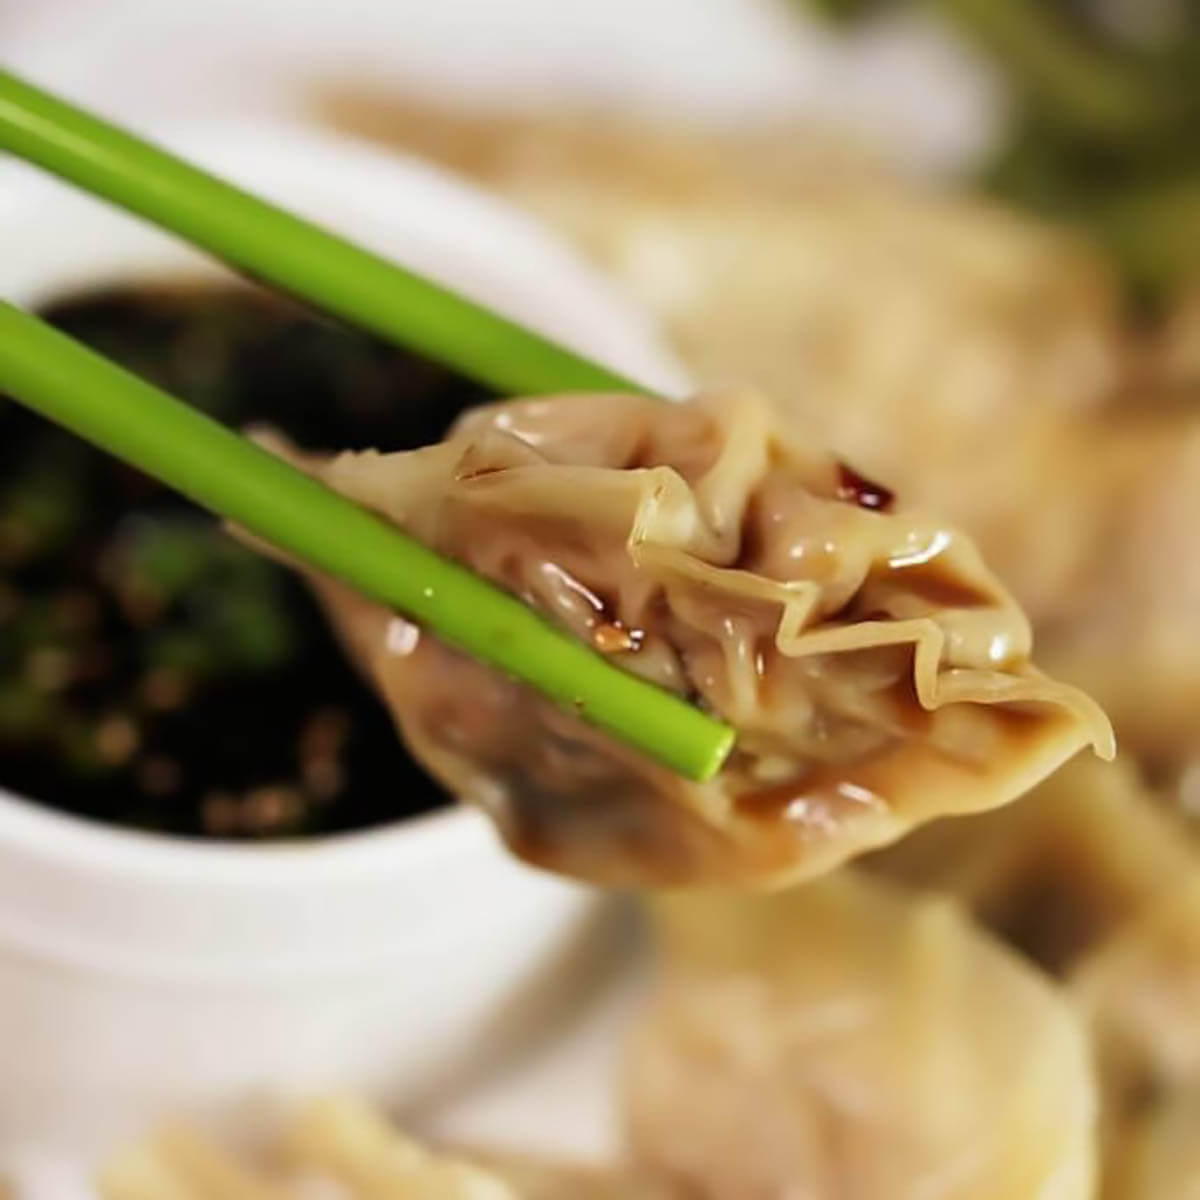 Potsticker held by chopsticks with soy sauce dip in the background.